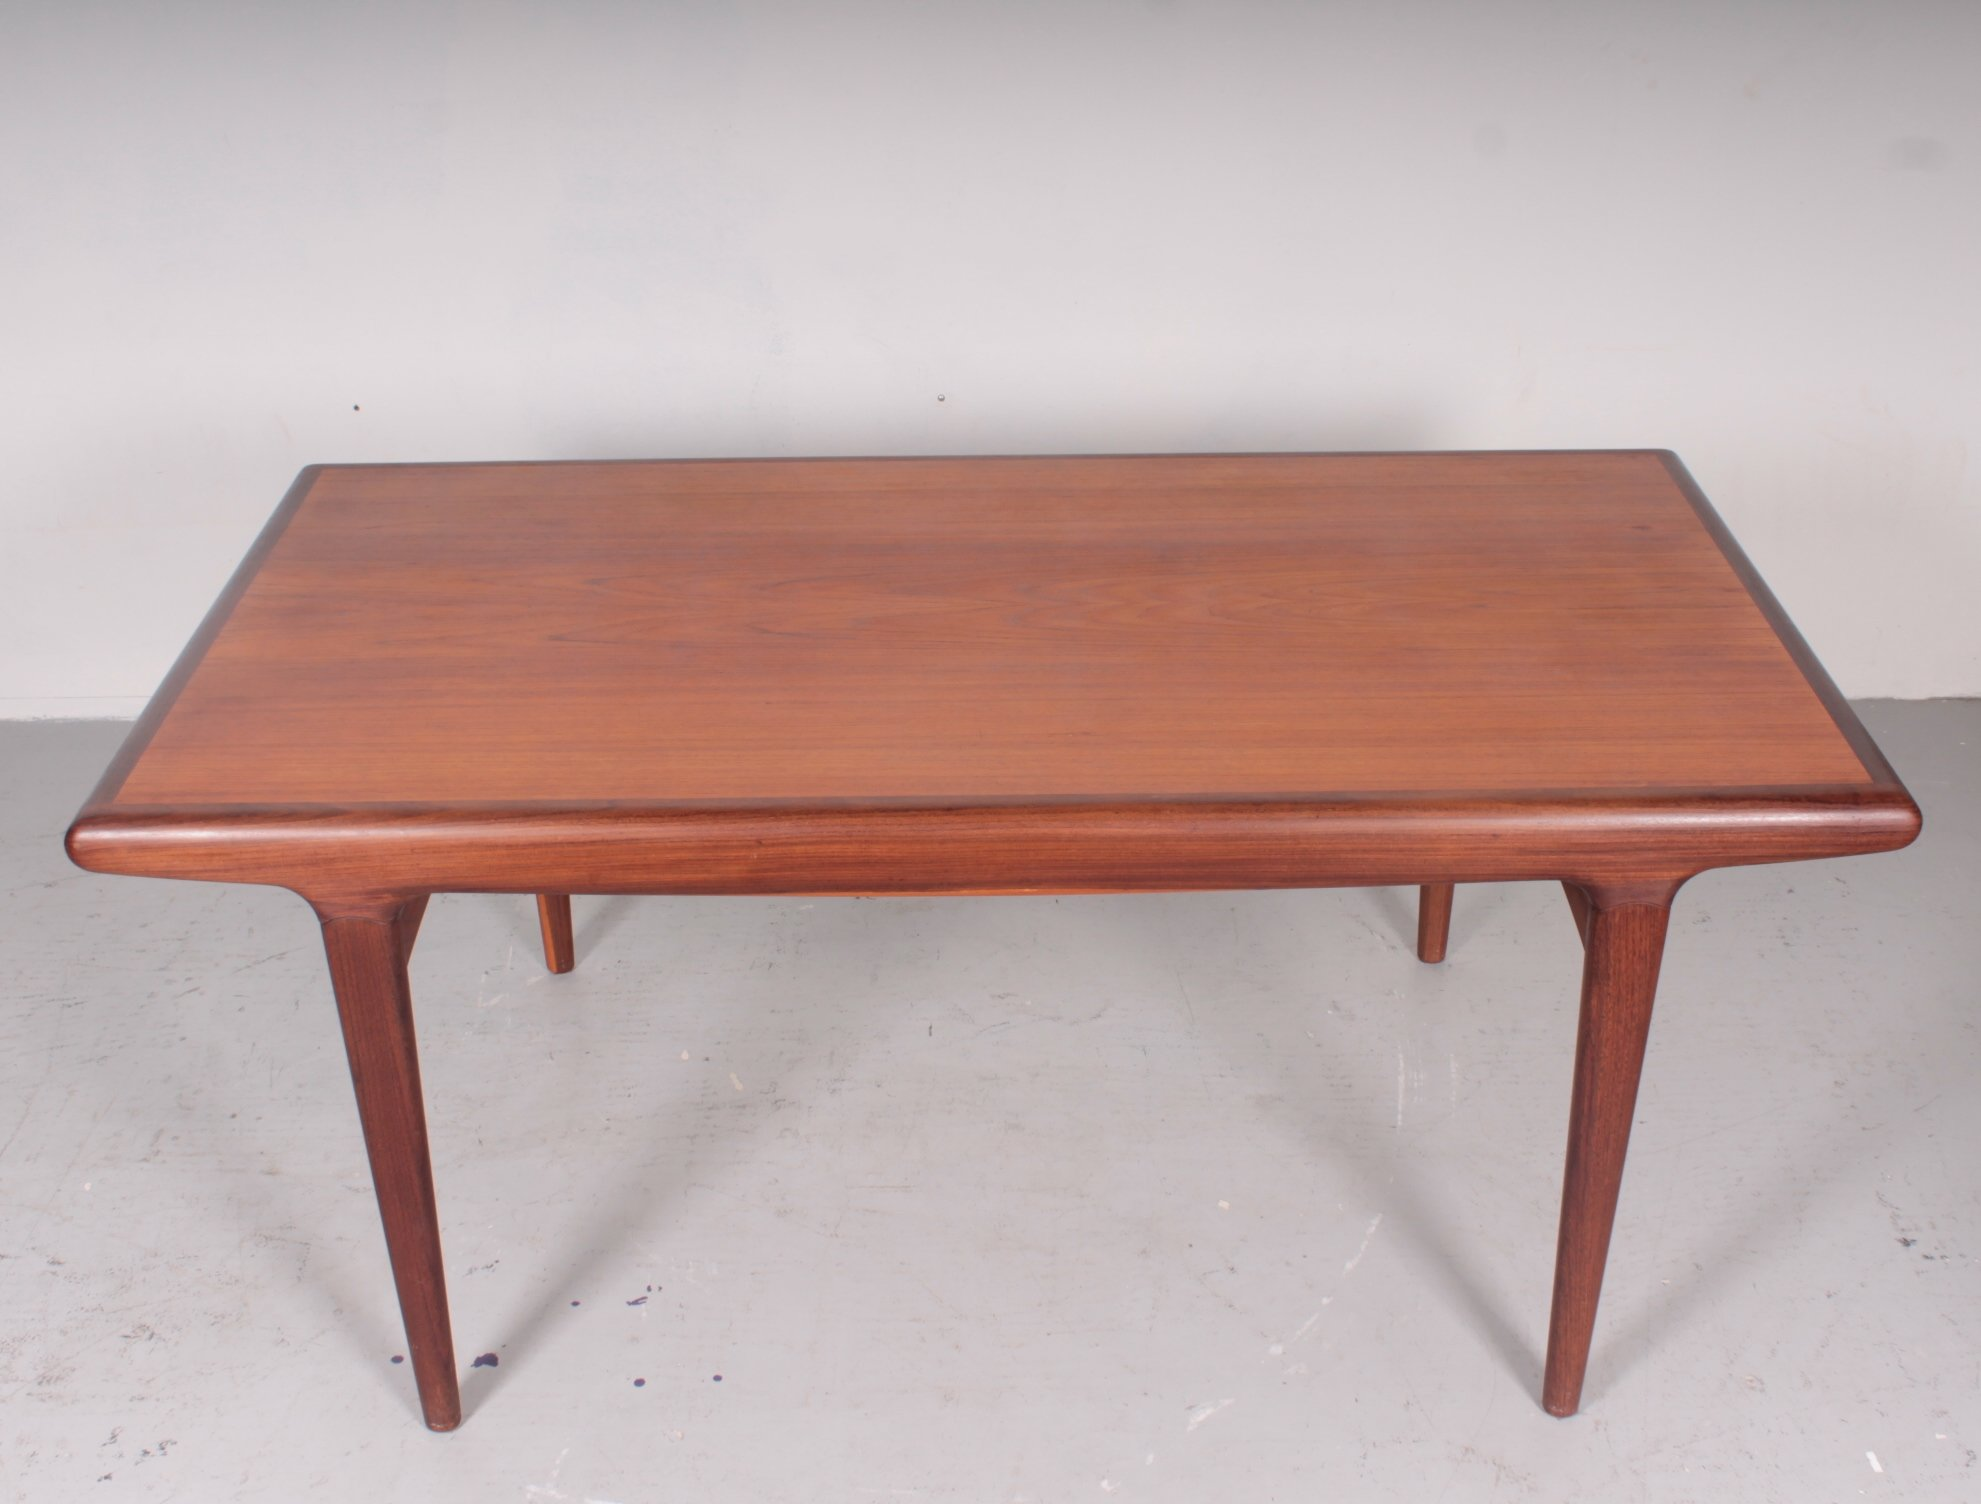 Extendable Rosewood Dining Table By Johannes Andersen For Uldum Møbelfabrik 1960s